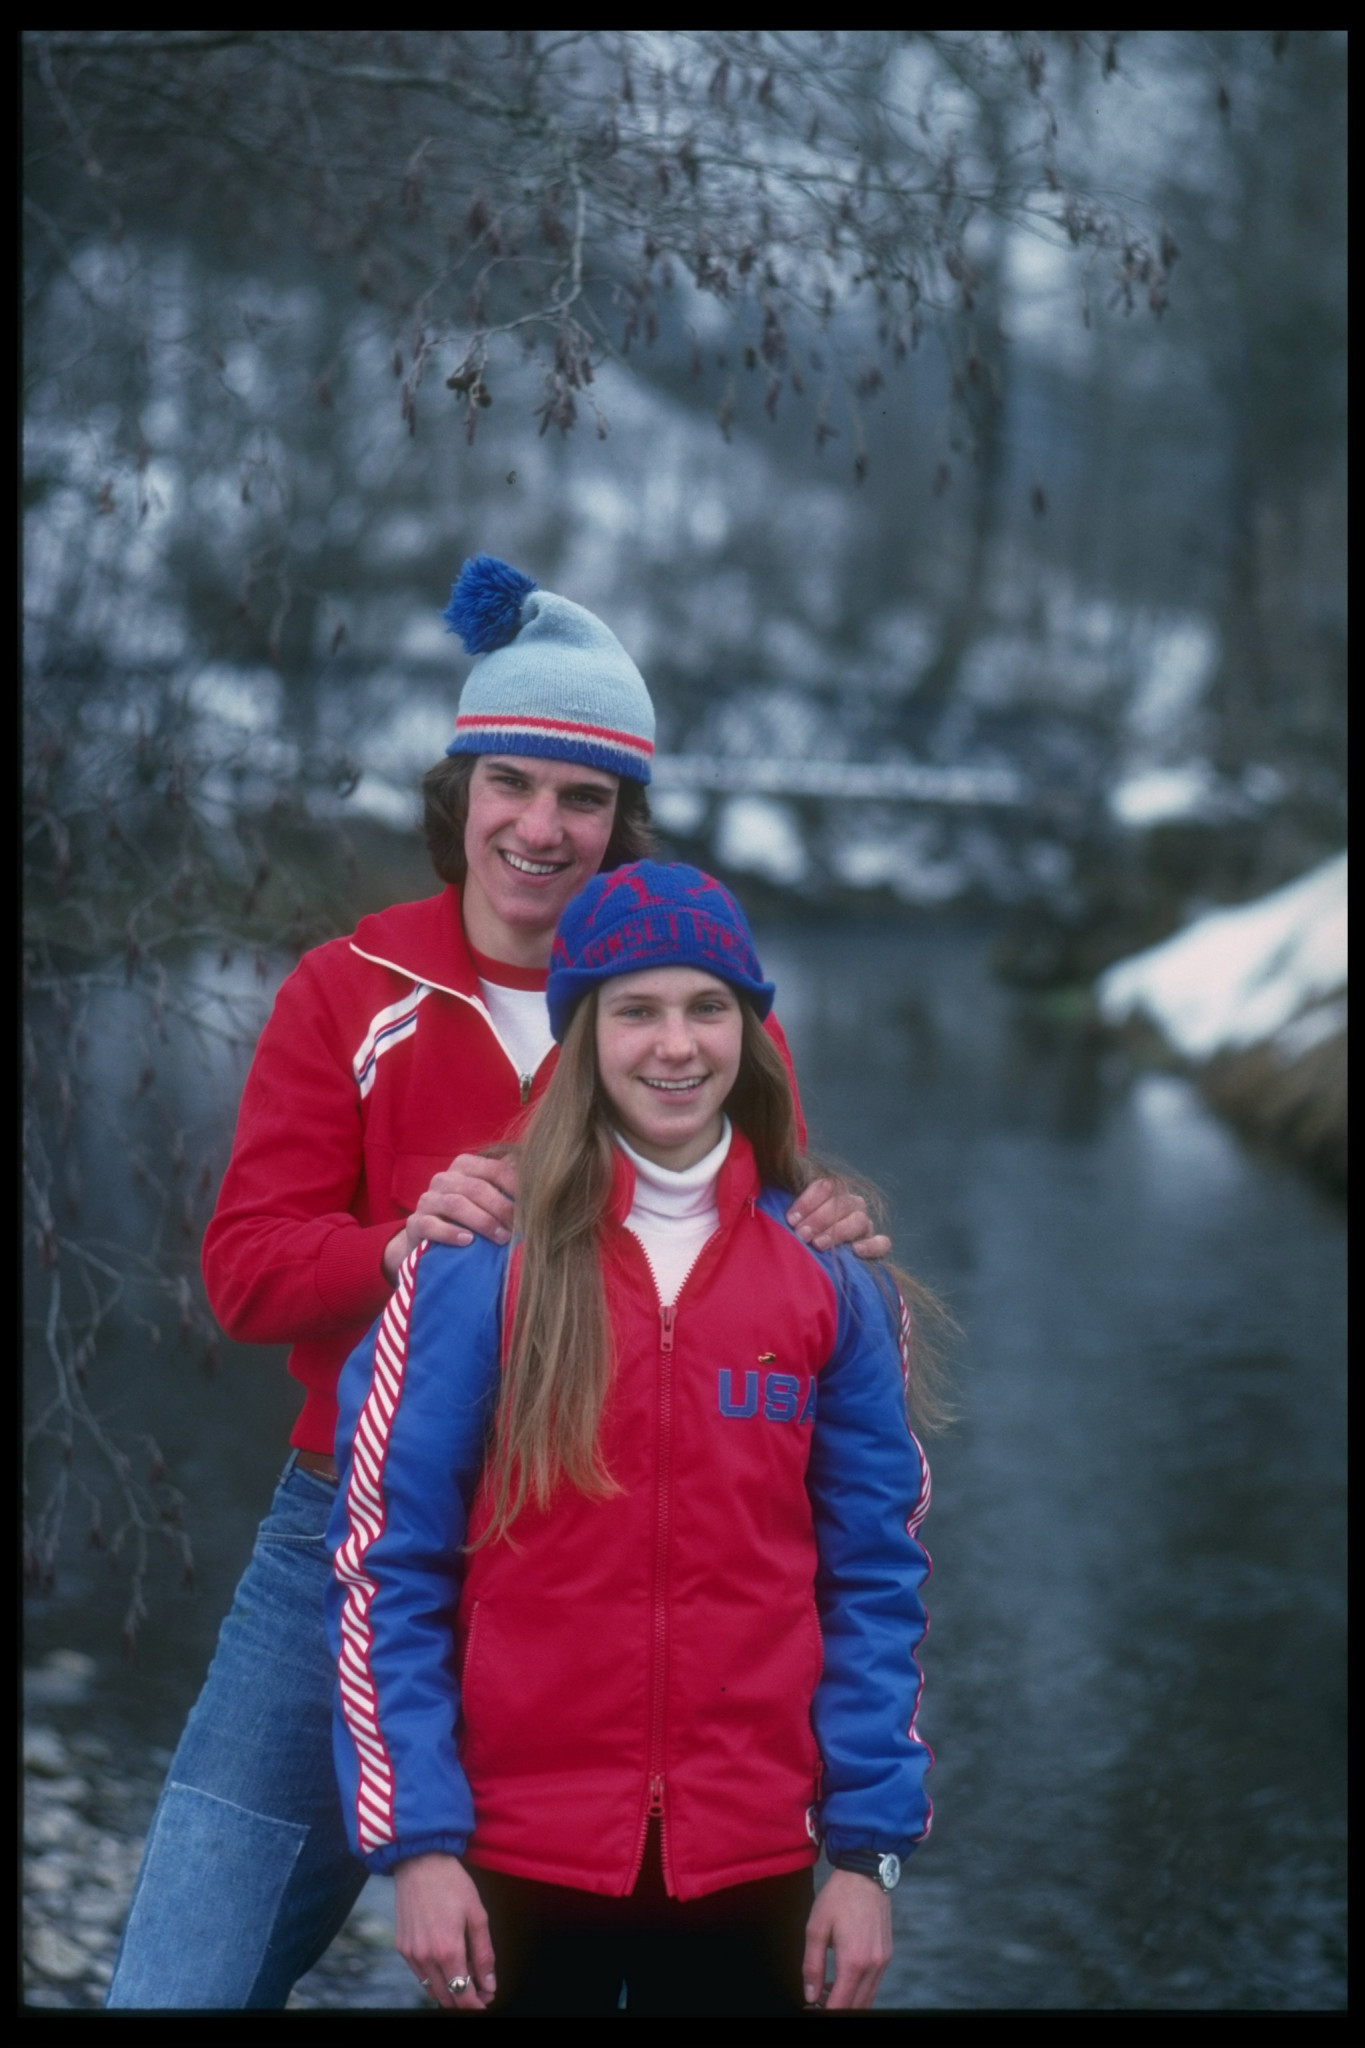 Eric and Beth Heiden in their US speed skating kit ©Getty Images